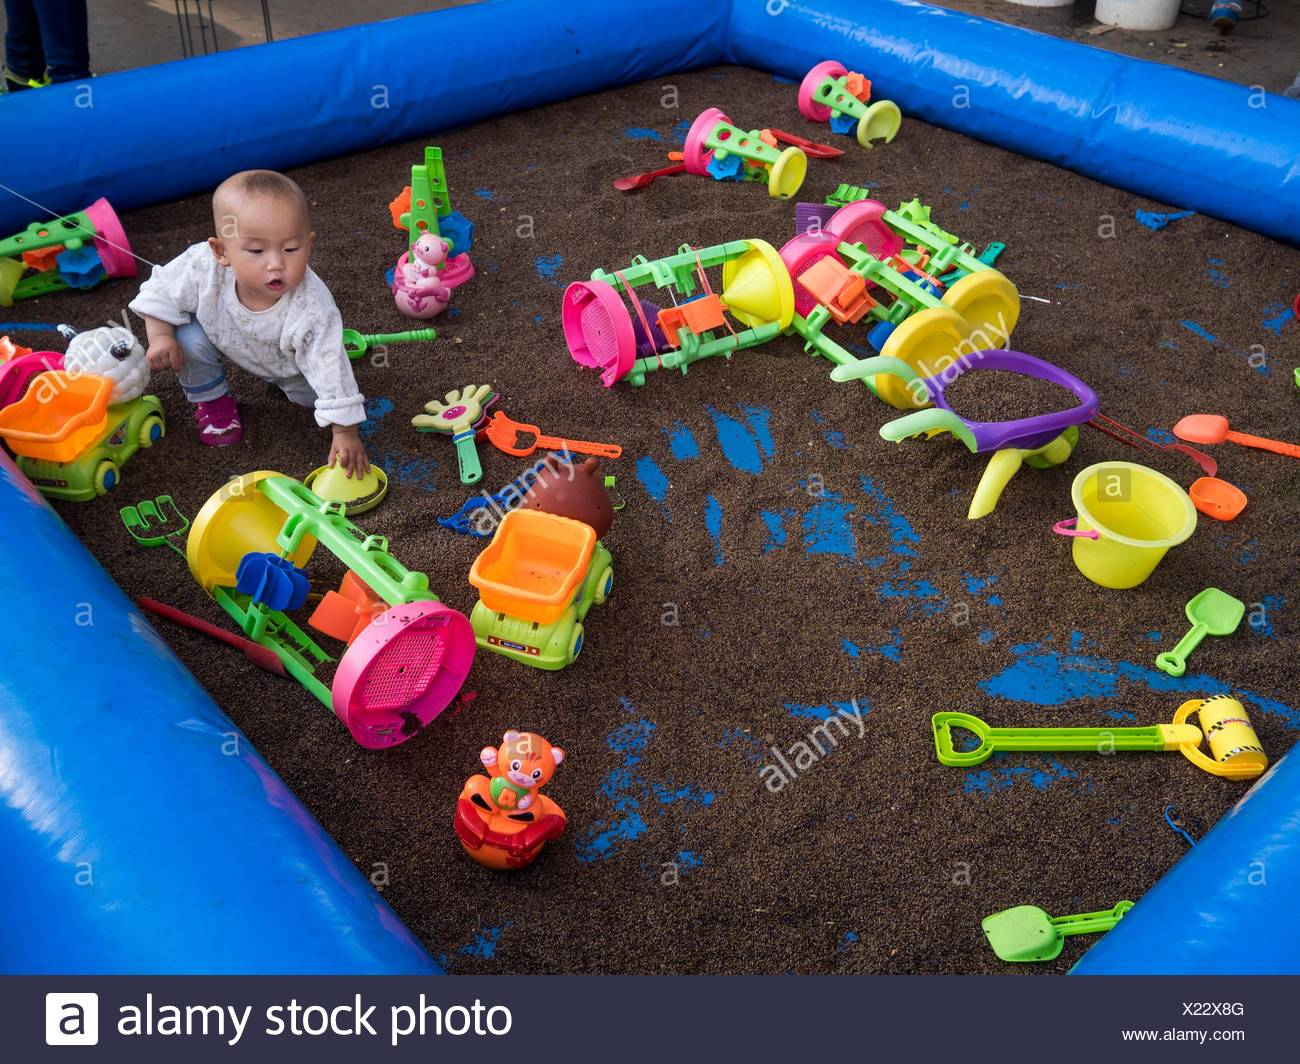 A baby plays in an inflatable sandbox surrounded by toys. - Stock Image